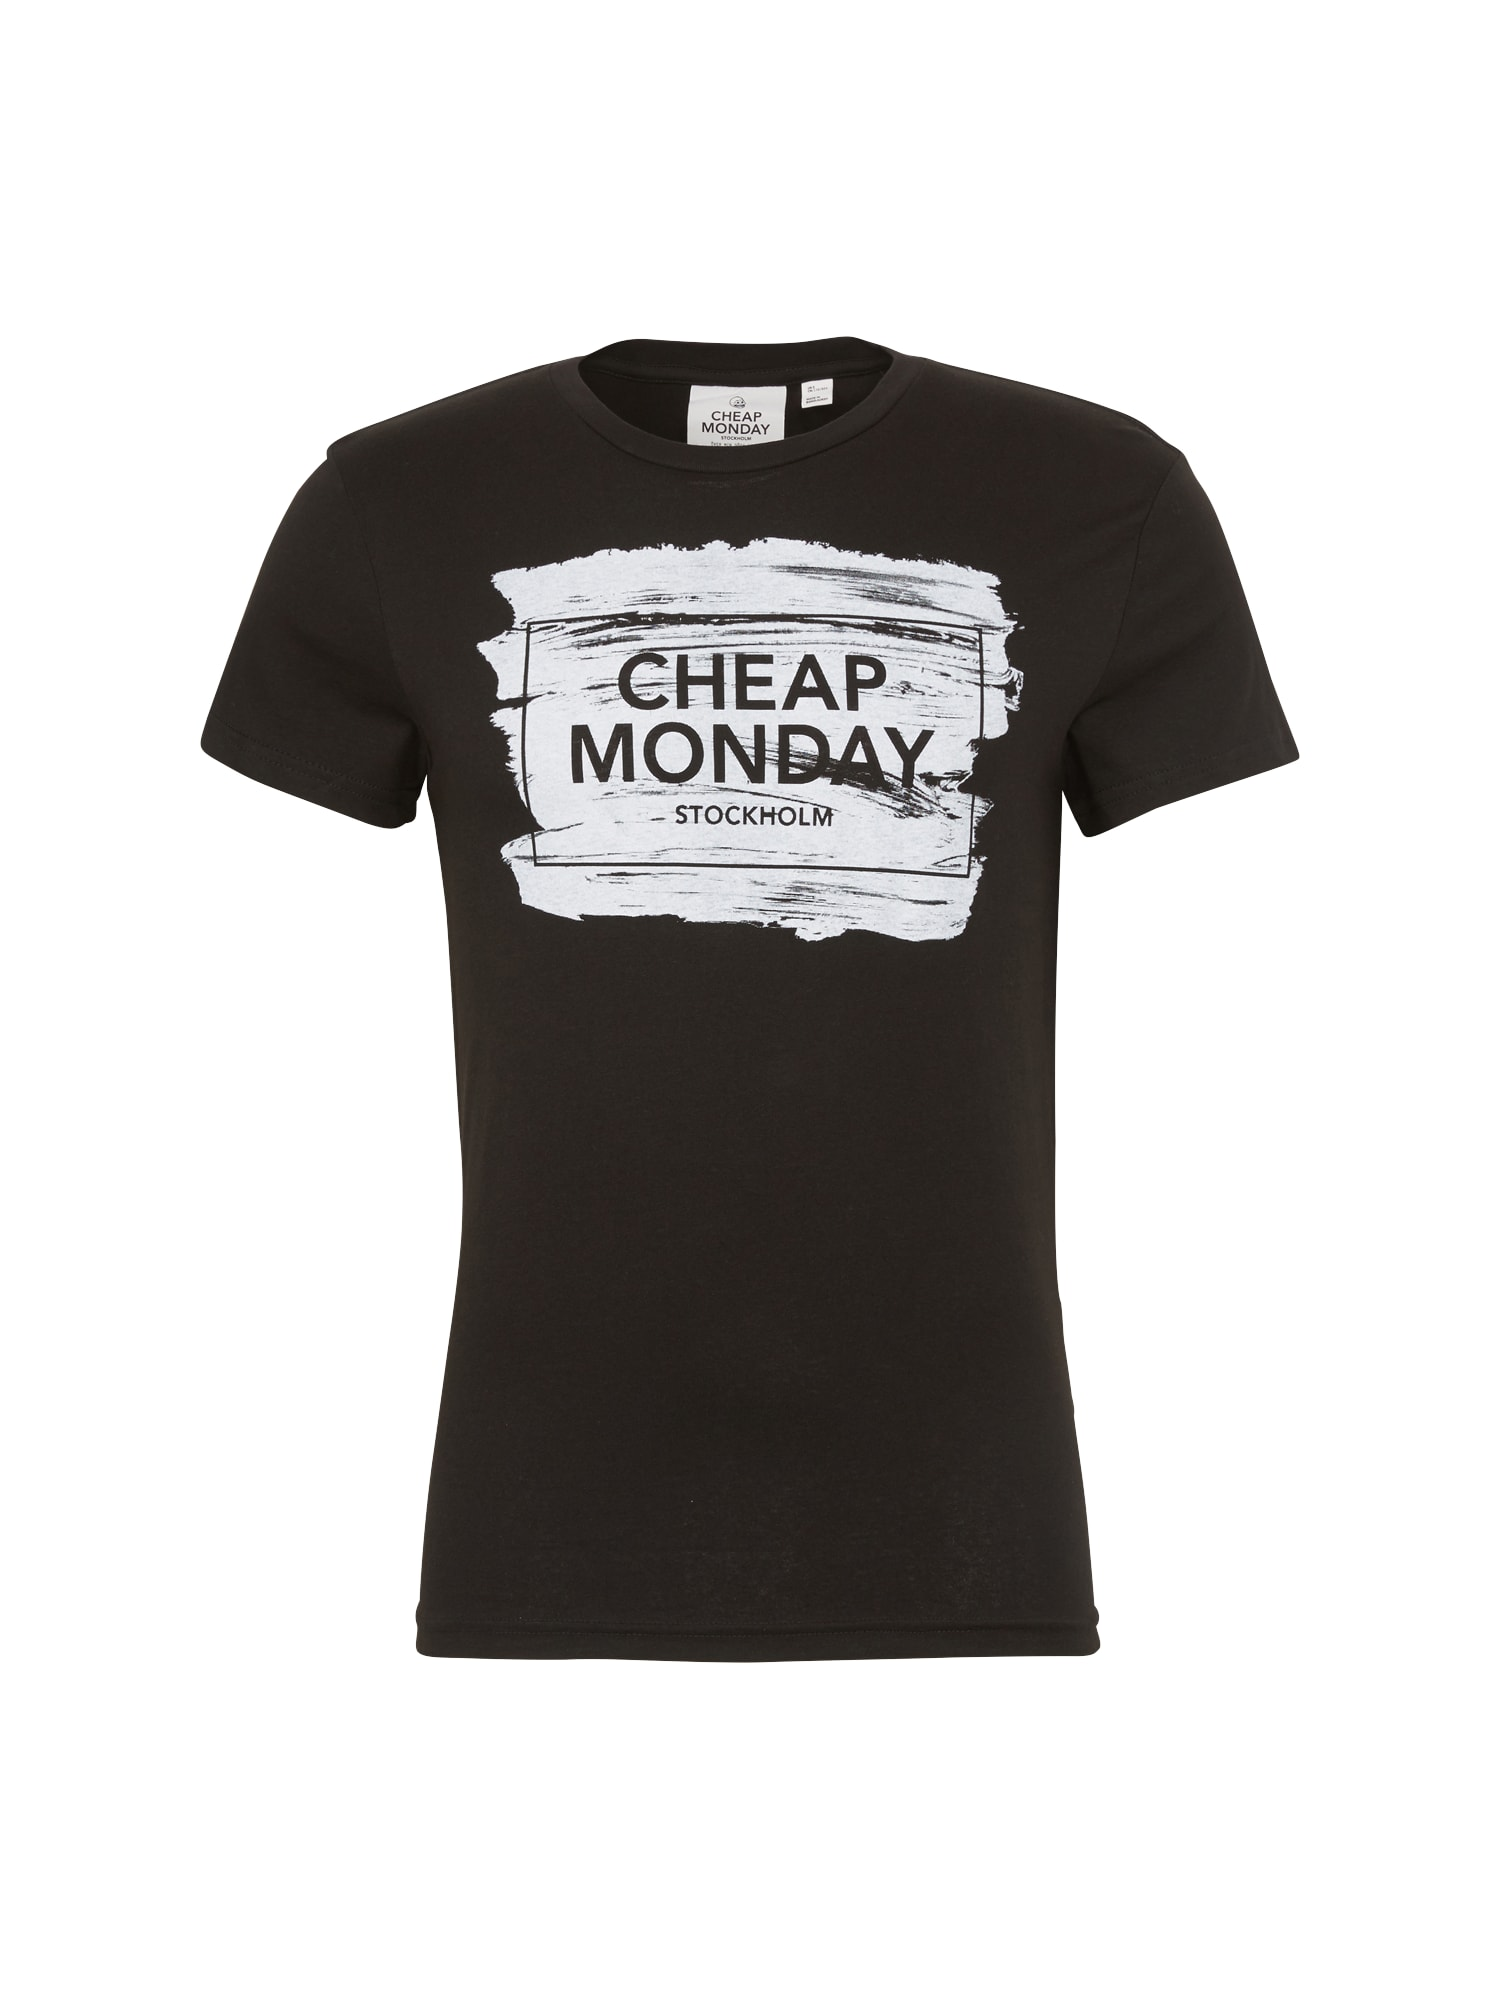 CHEAP MONDAY Heren Shirt Standard tee Paint box zwart wit